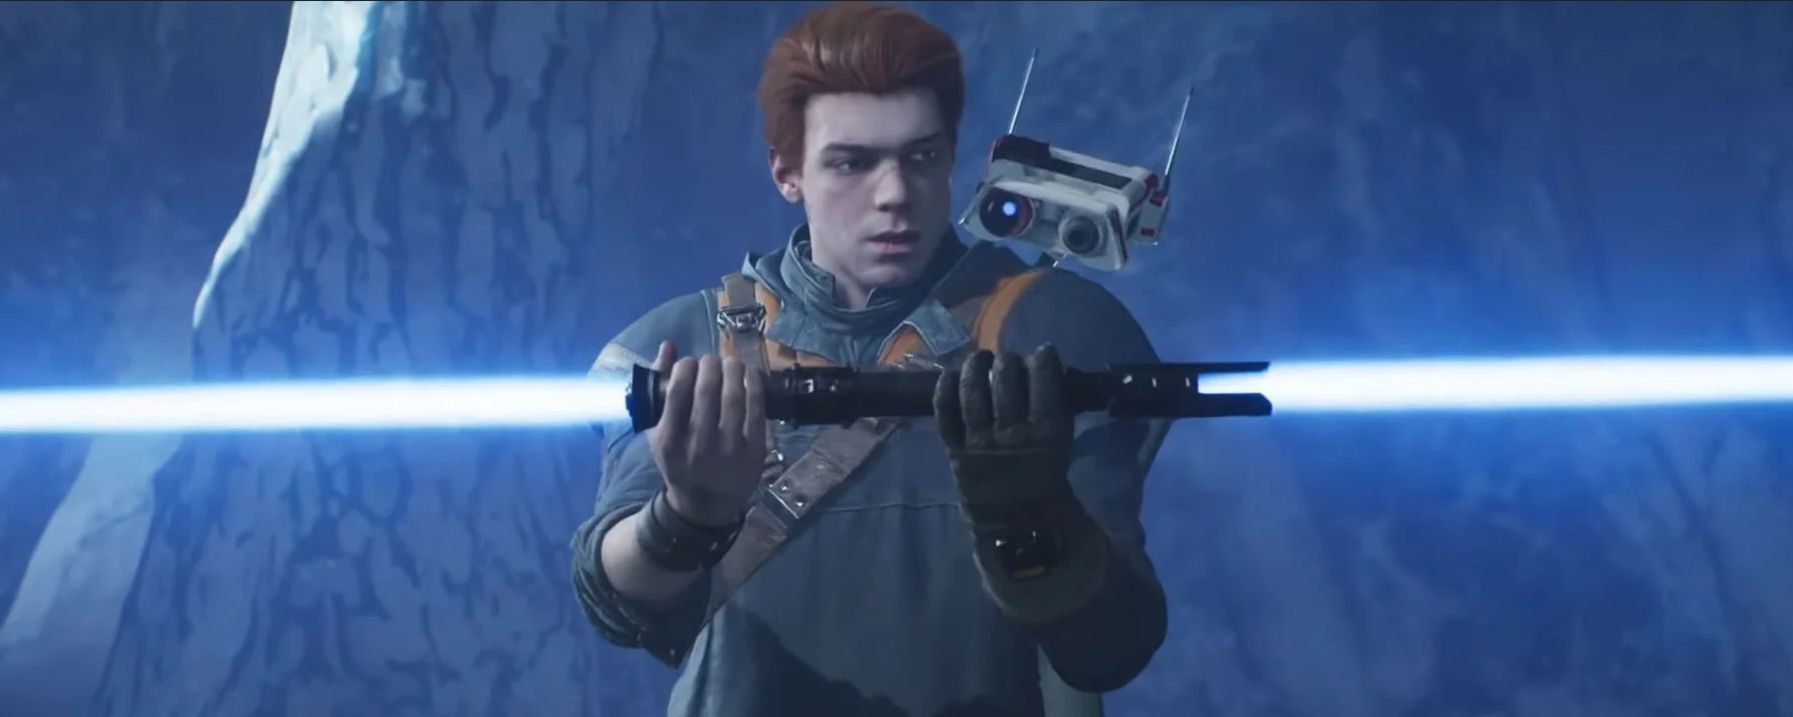 Star Wars Jedi: Fallen Order | 2019 Holiday Gift Guide: What to Get For the Gamers In Your Life | Gammicks